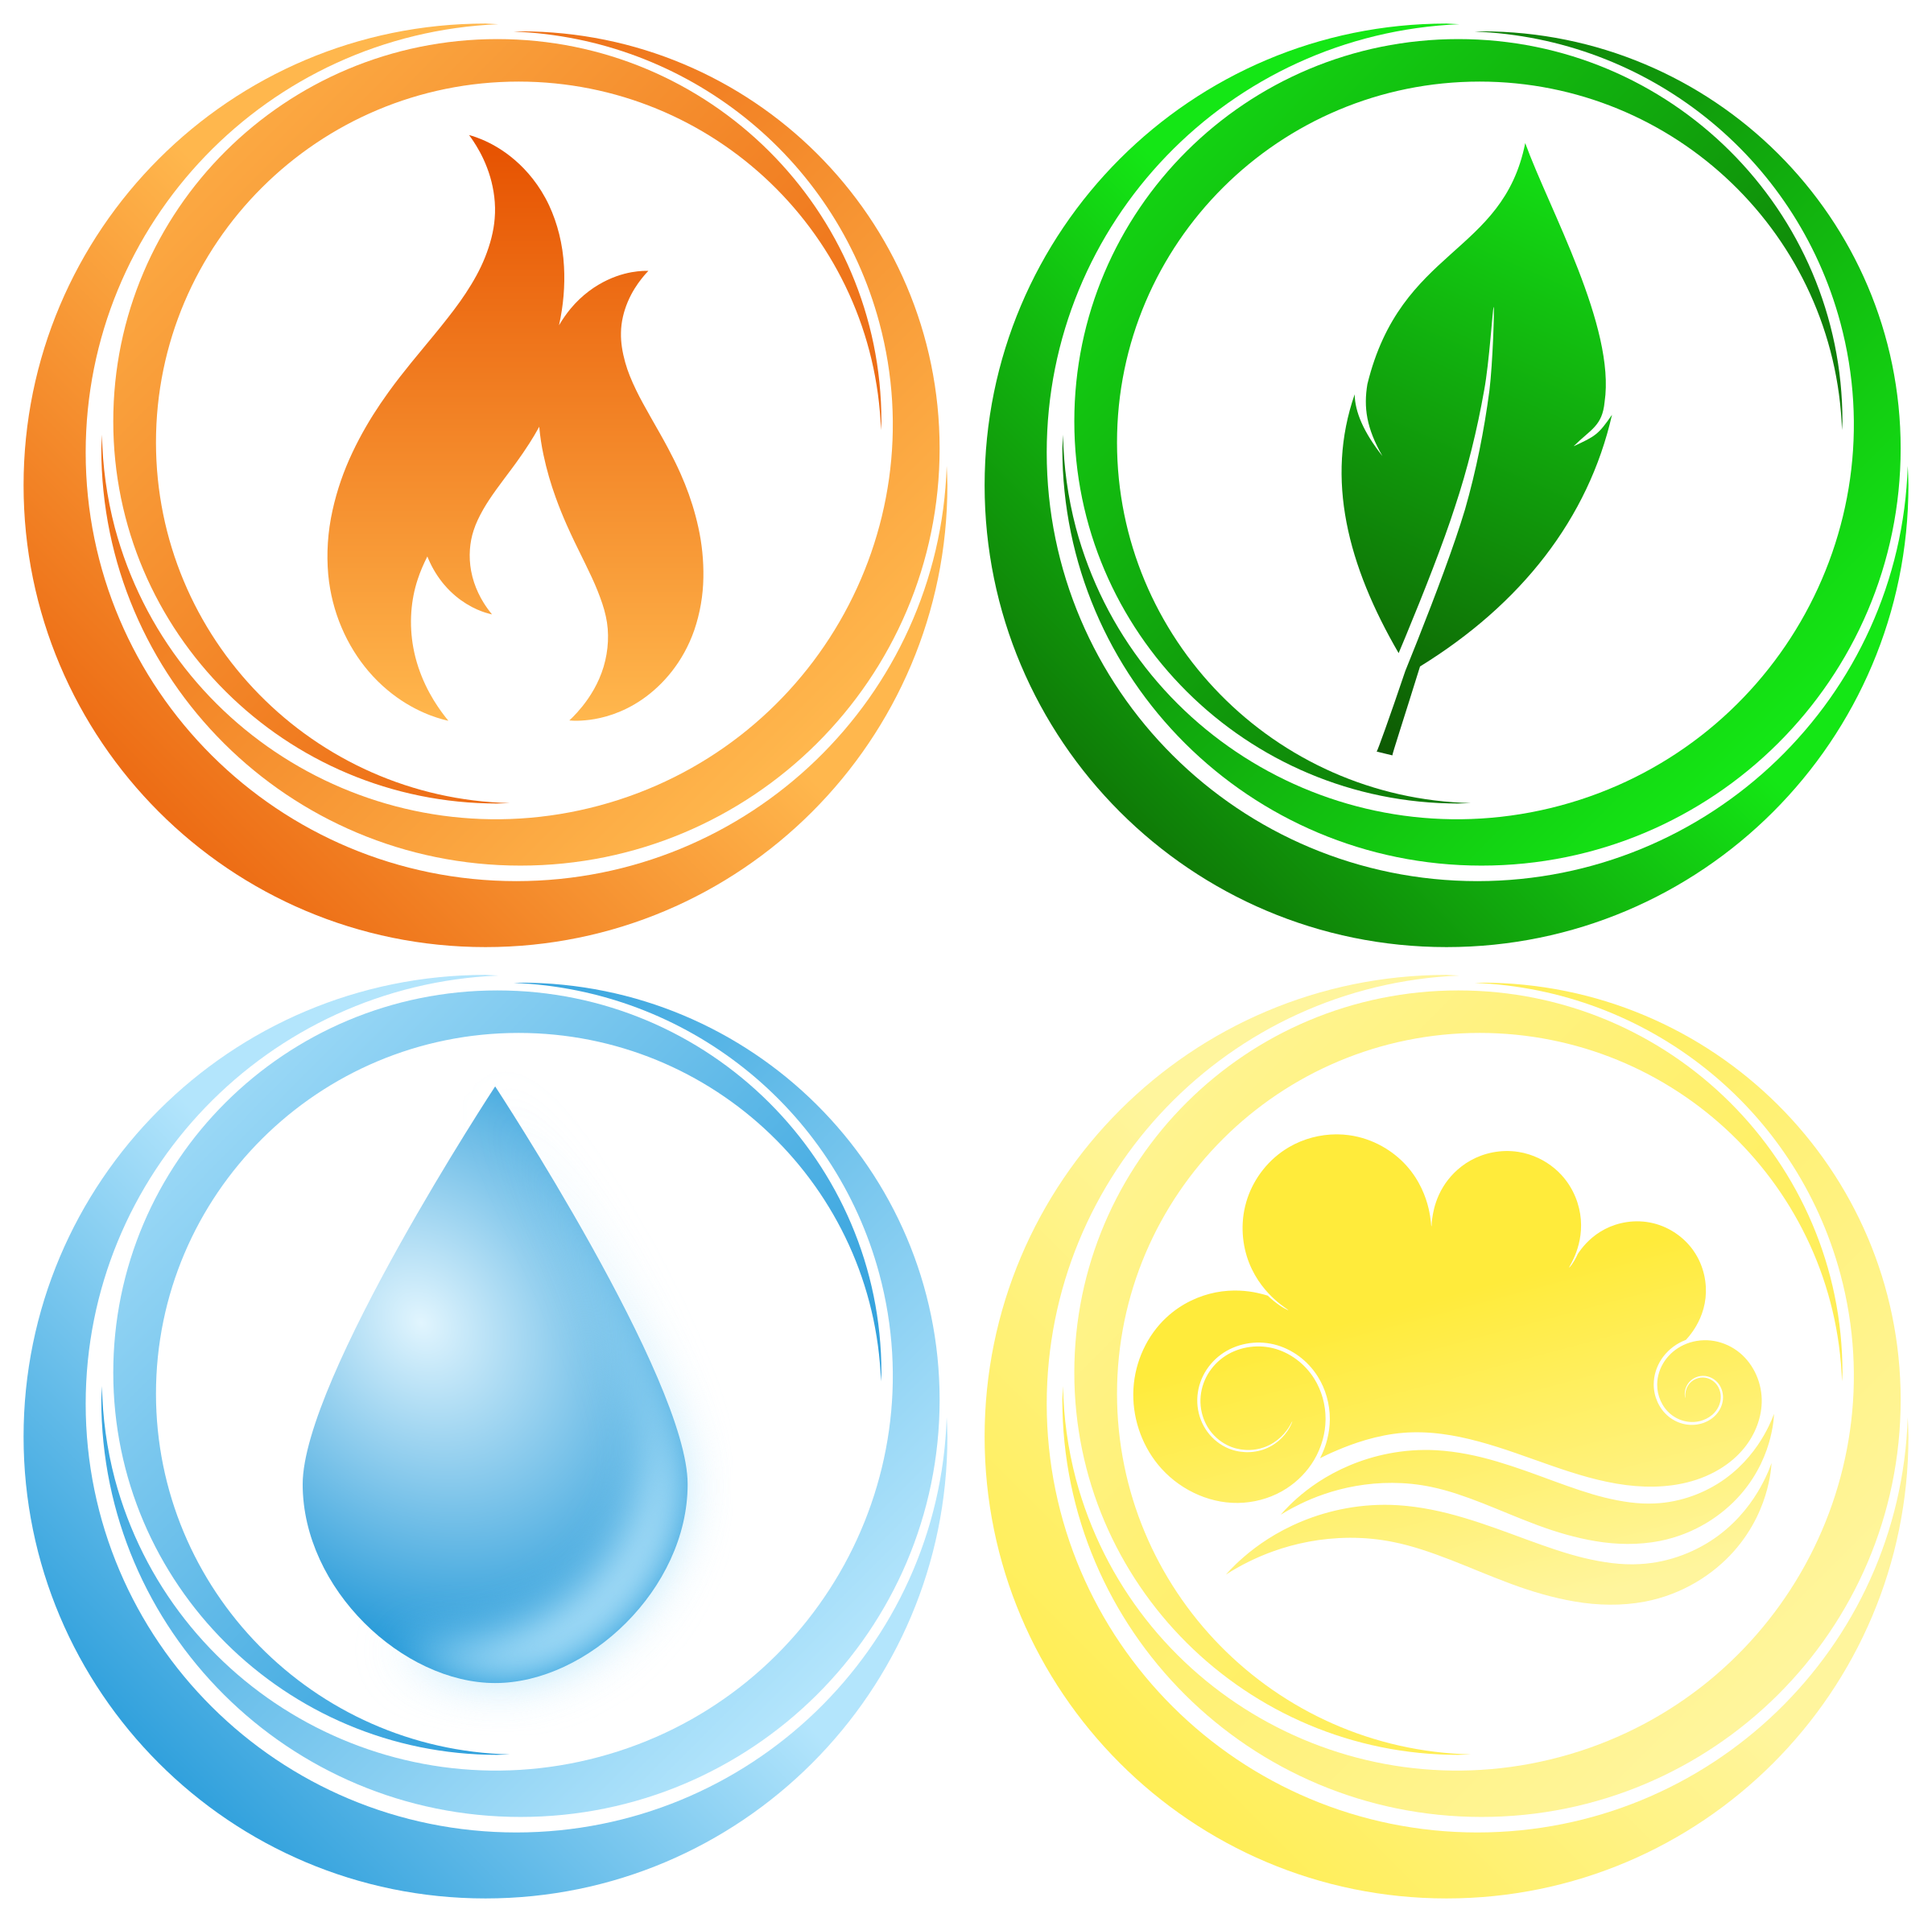 Symbols of the four elements by Susa